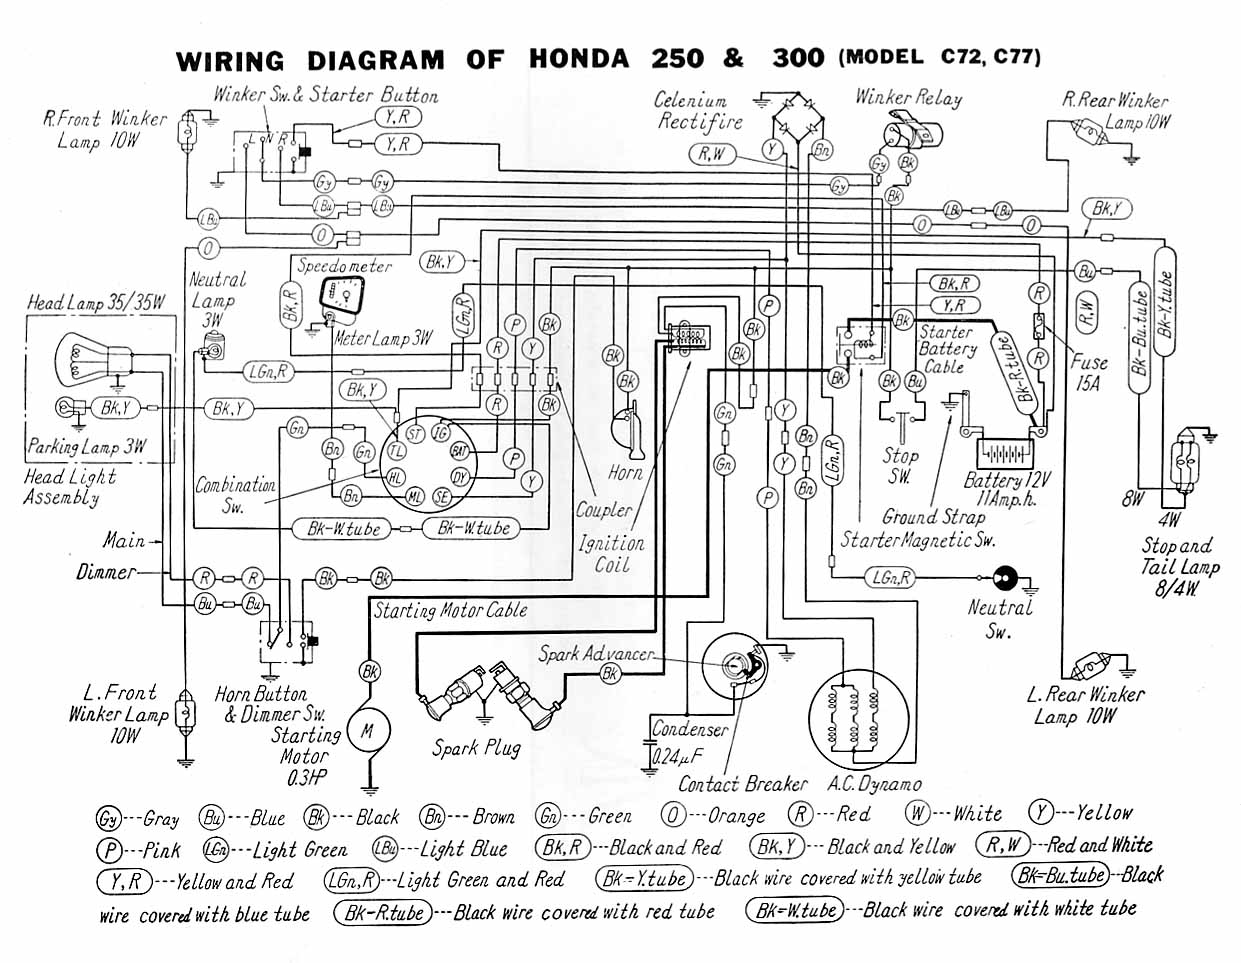 1974 Honda Ct90 Wiring Diagram Library Isuzu Diagrams For Free